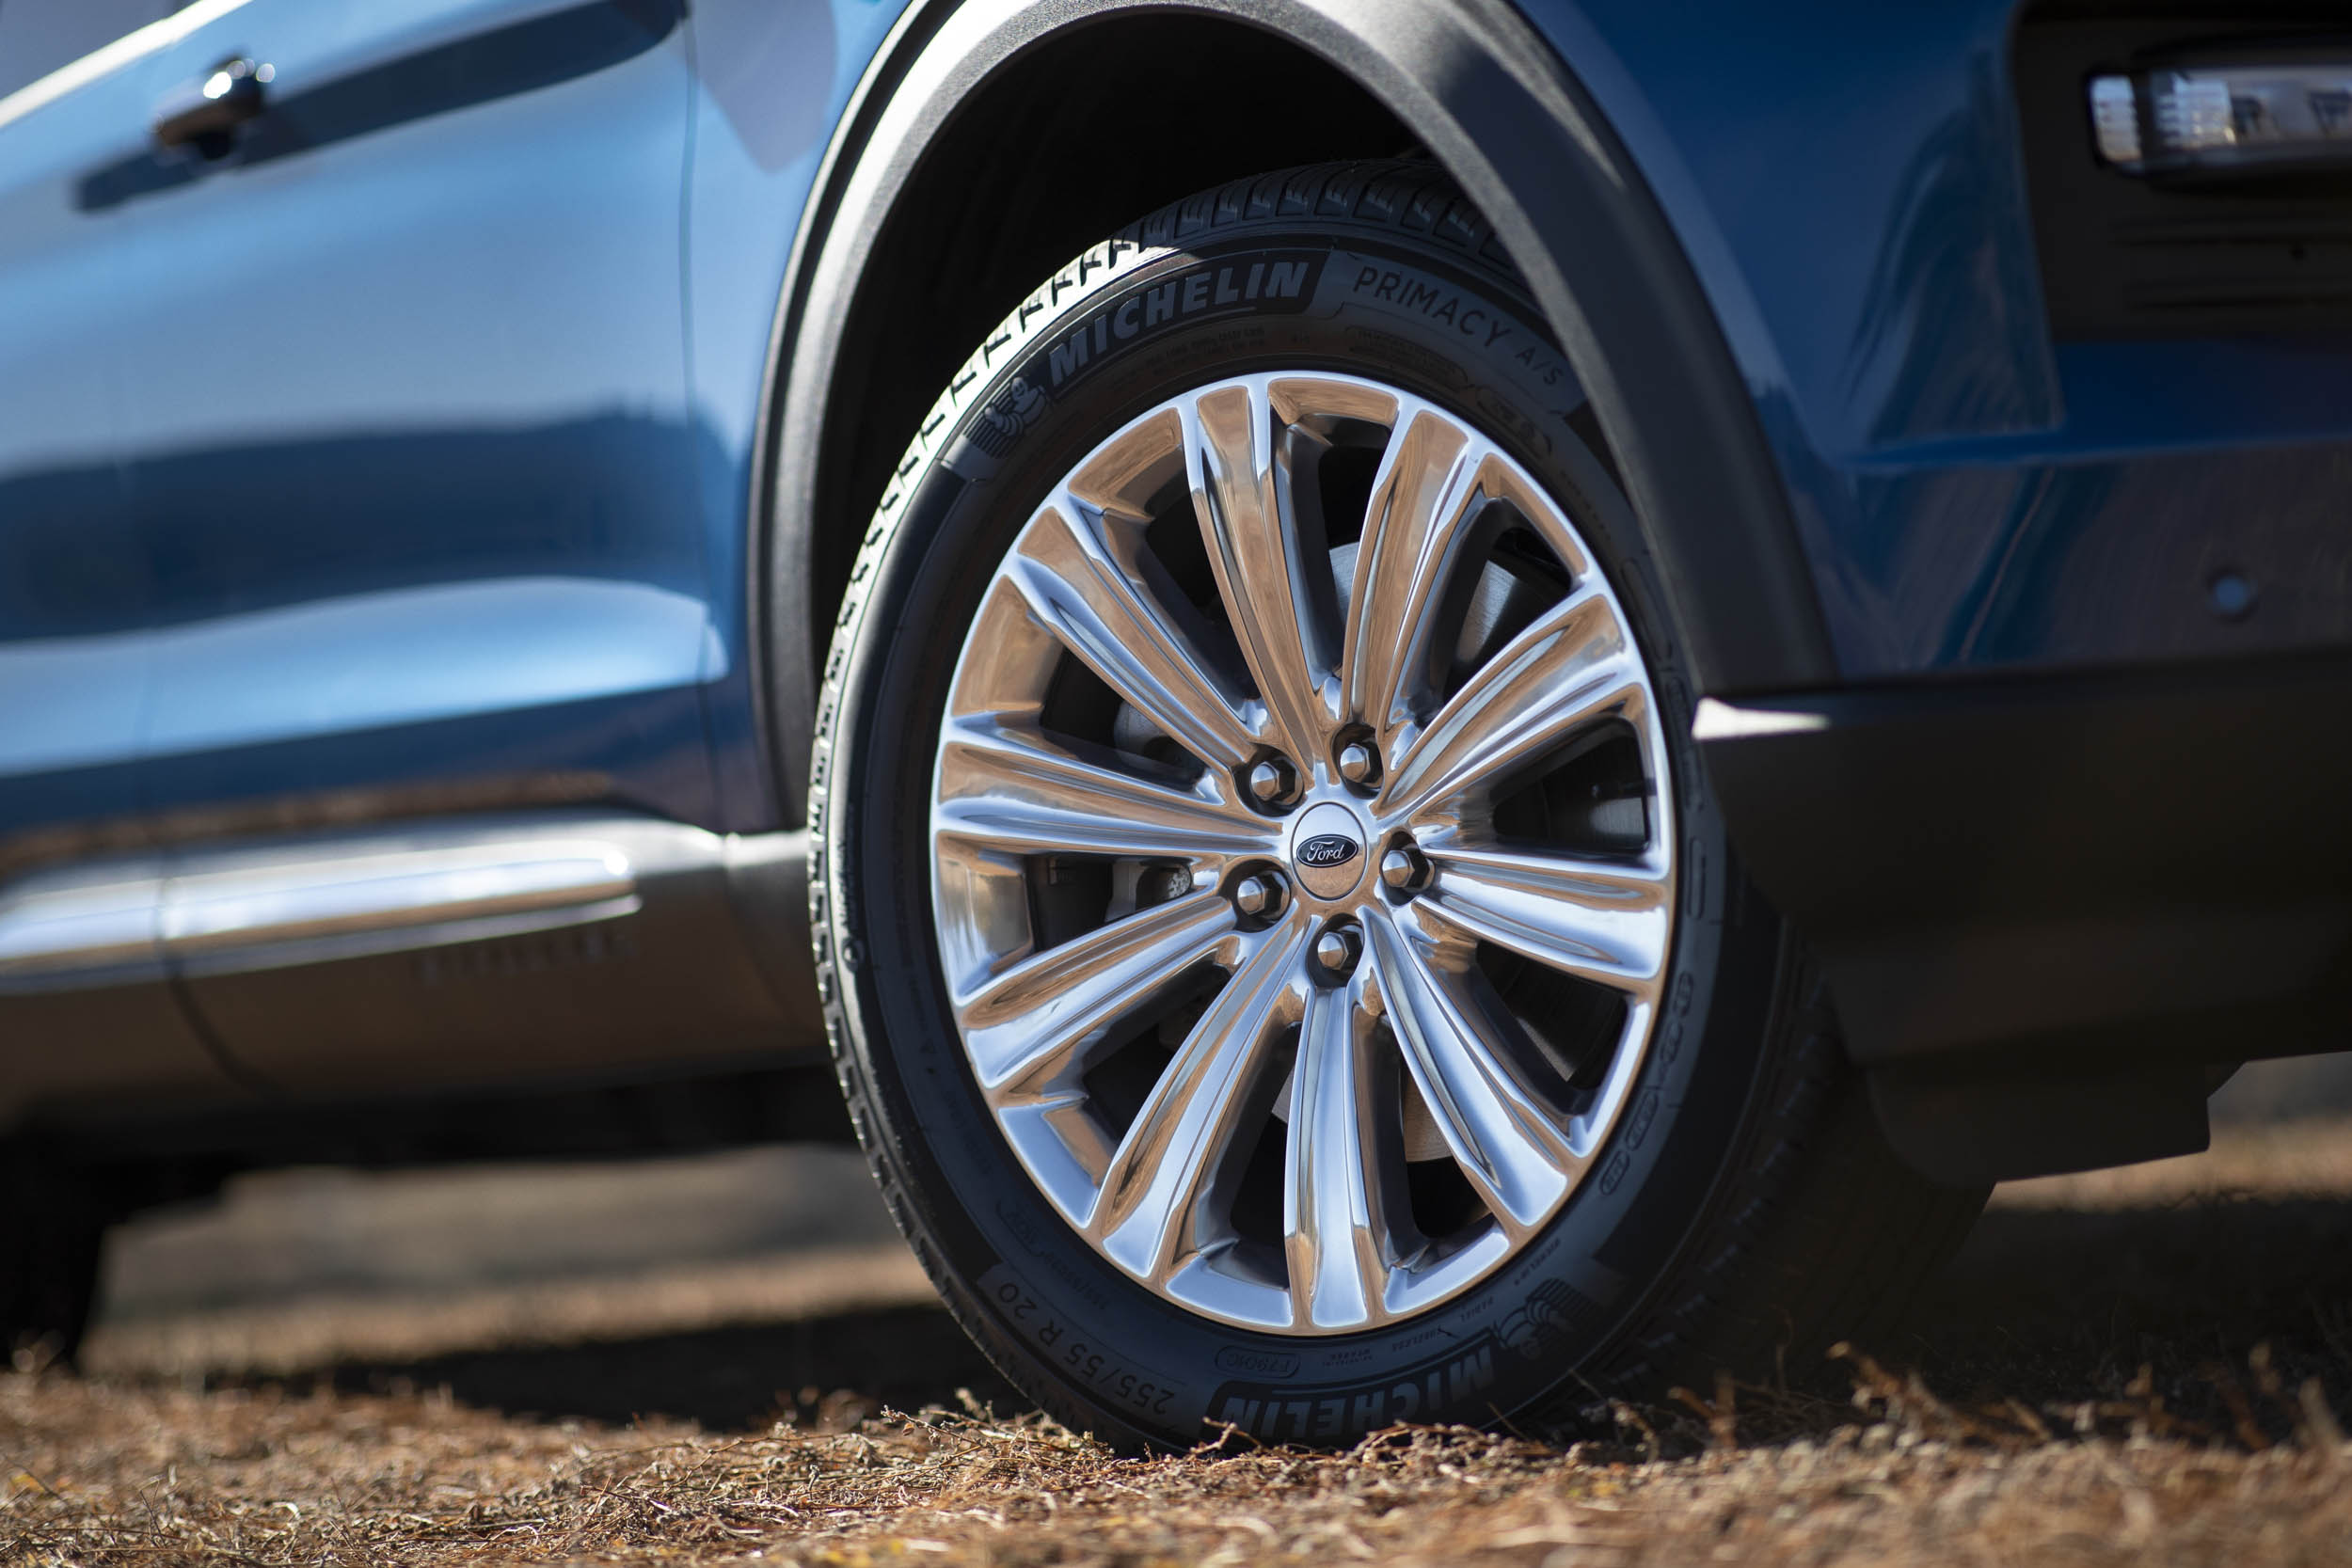 2020 Ford Explorer Limited wheel detail